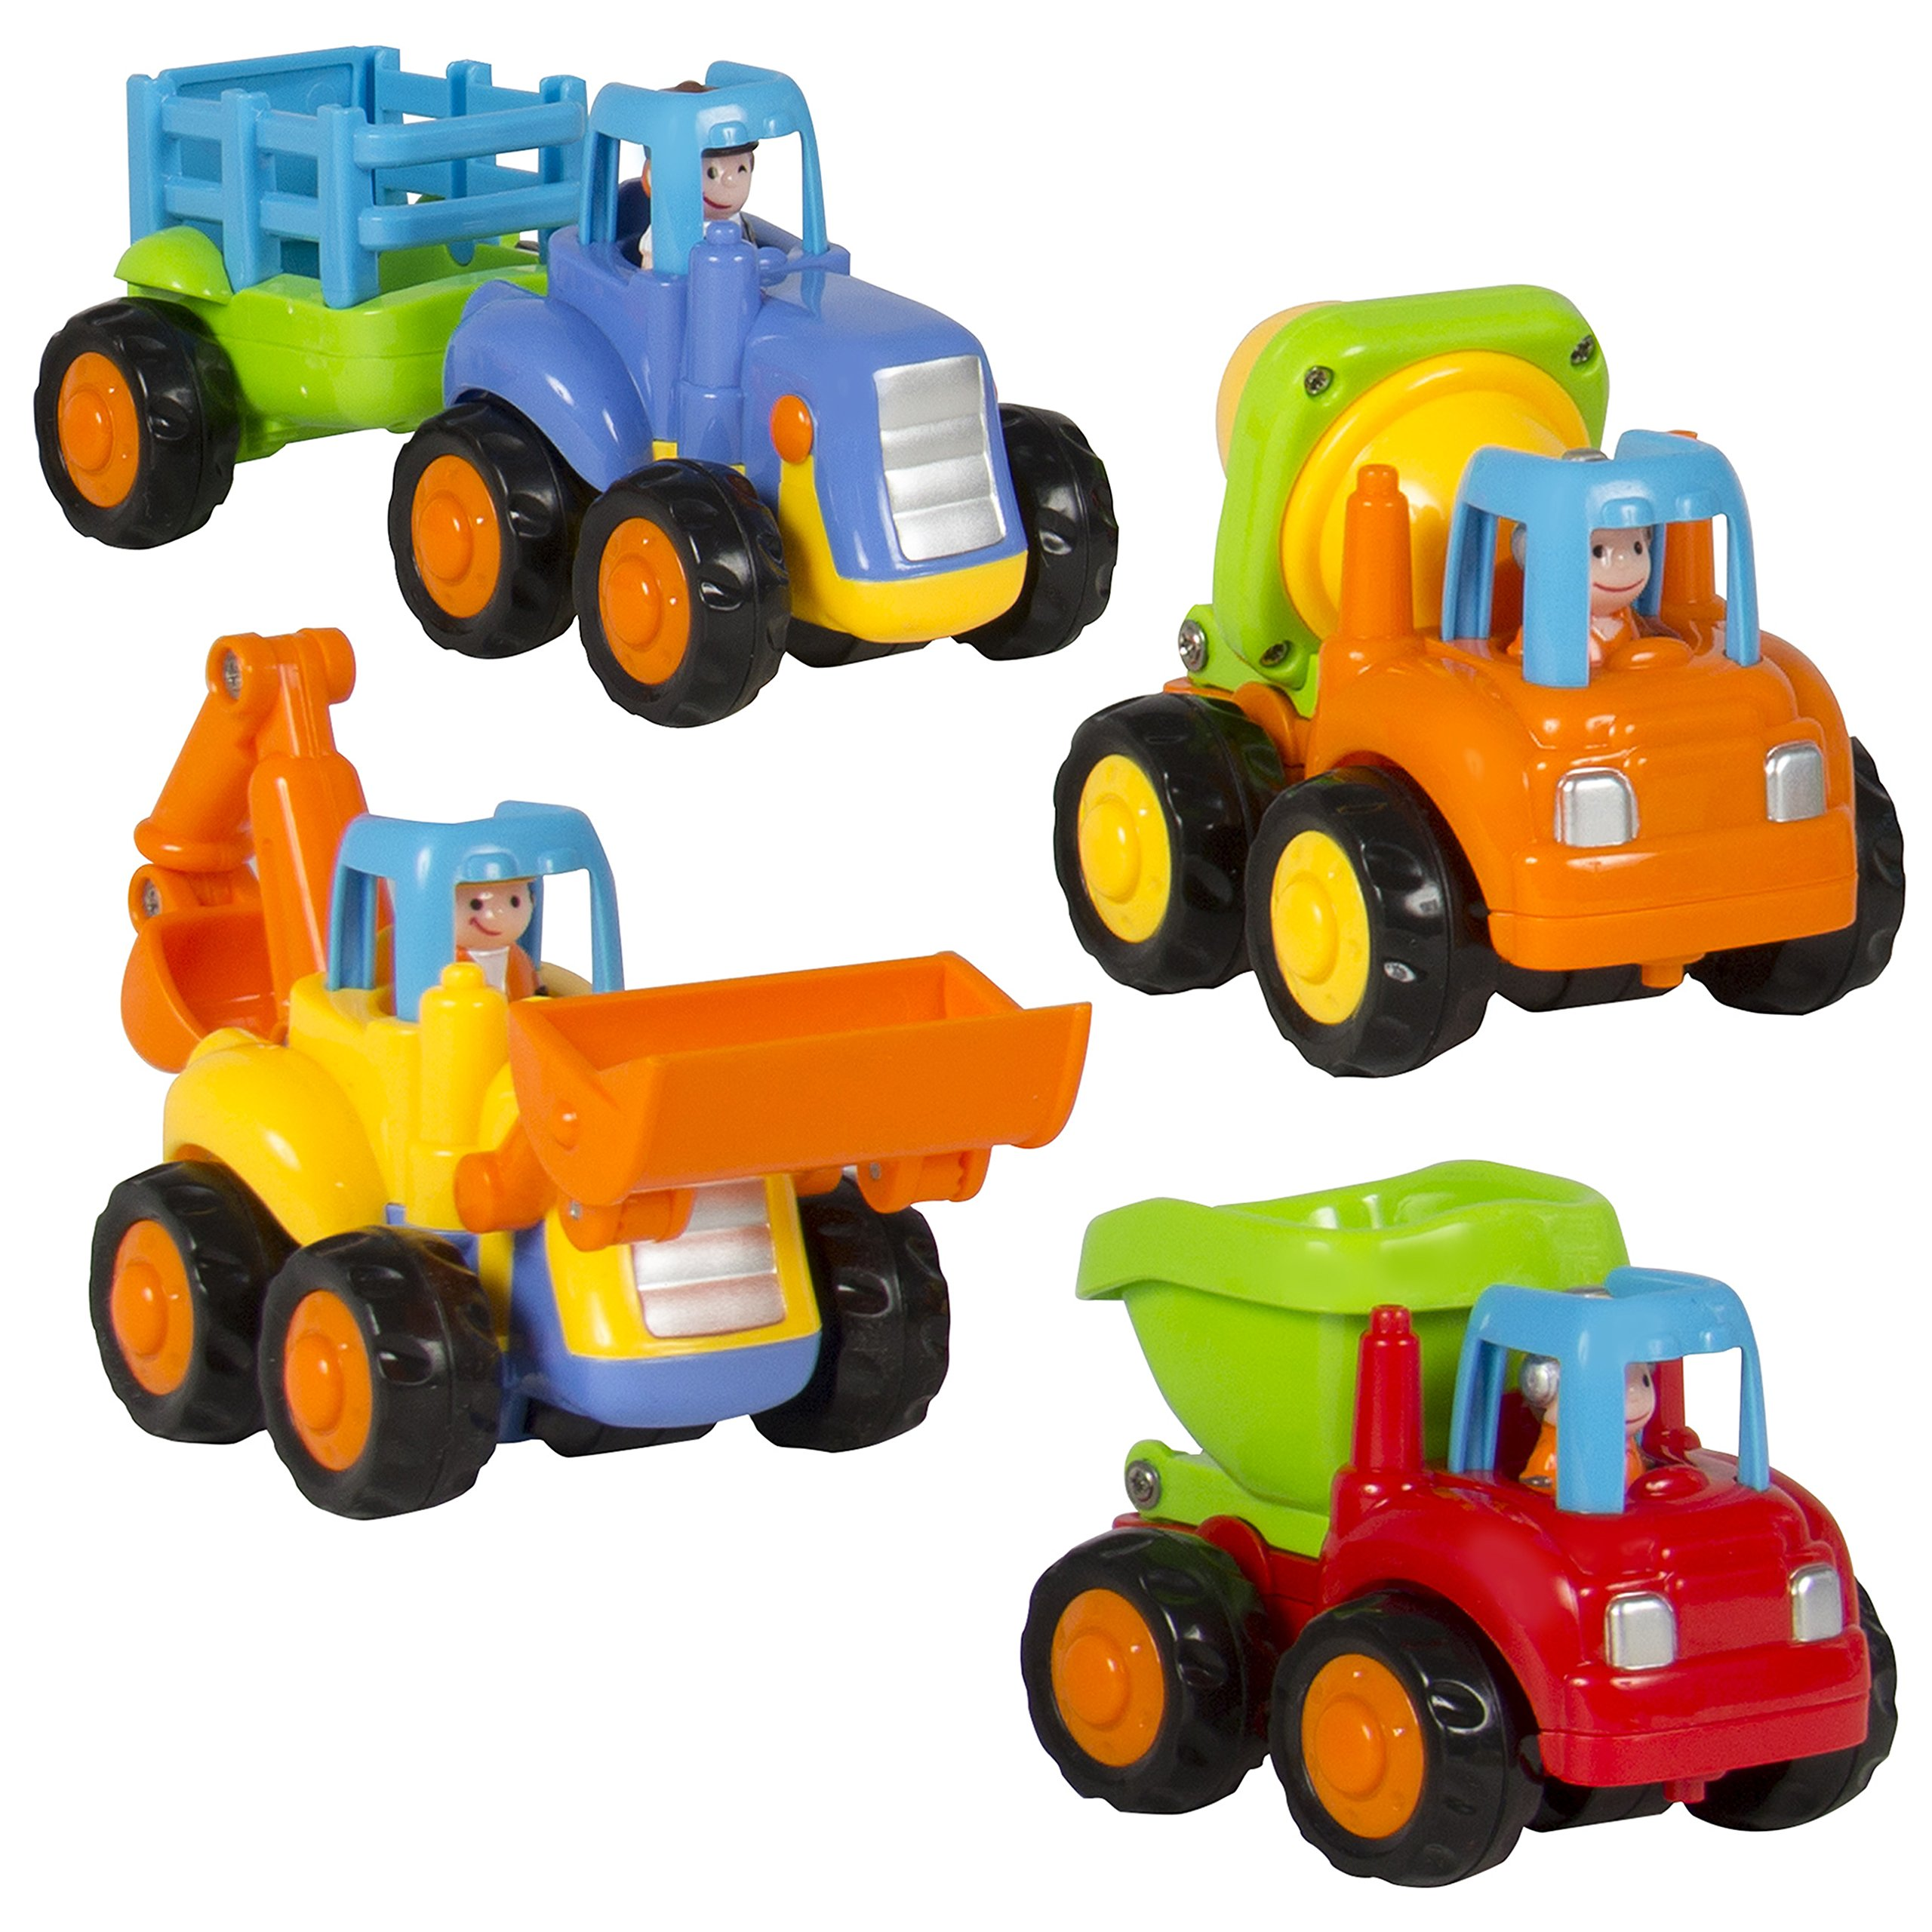 Best Choice Products Set of 4 Push and Go Friction Powered Car Toys, Tractor, Bulldozer, Cement Mixer, and Dump Truck Play Set